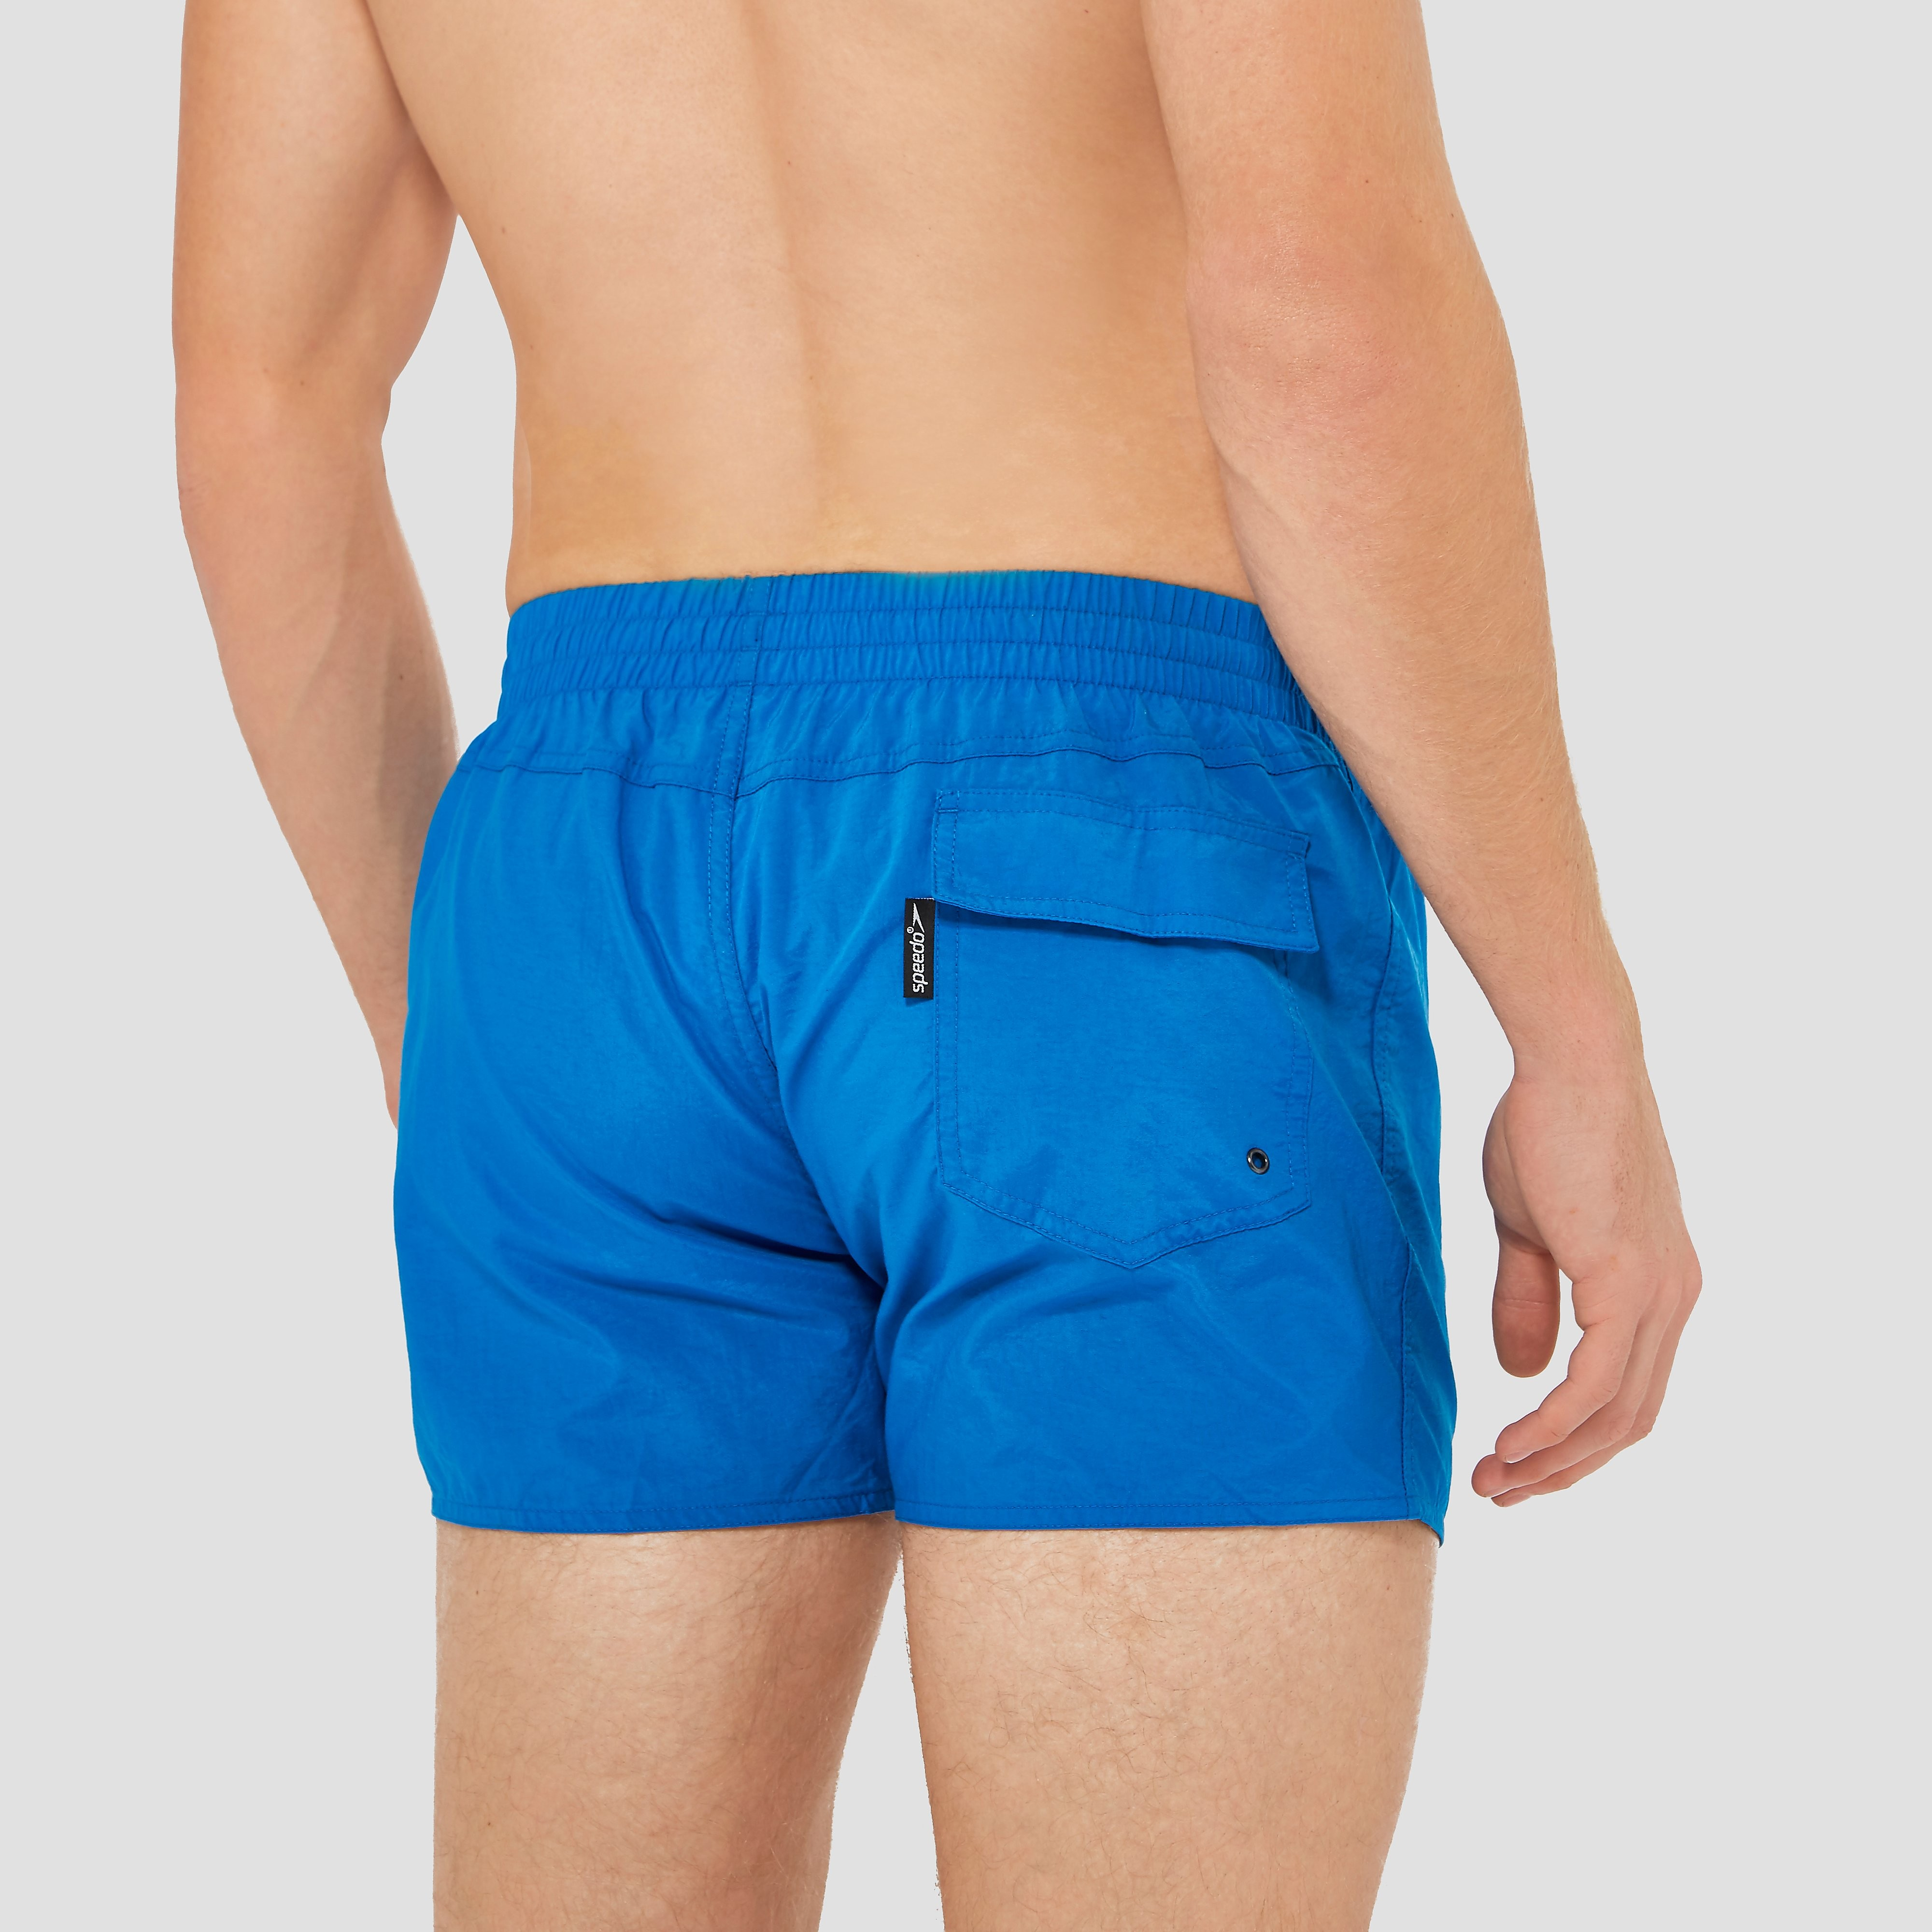 Speedo Fitted Leisure Men's Swimming Shorts